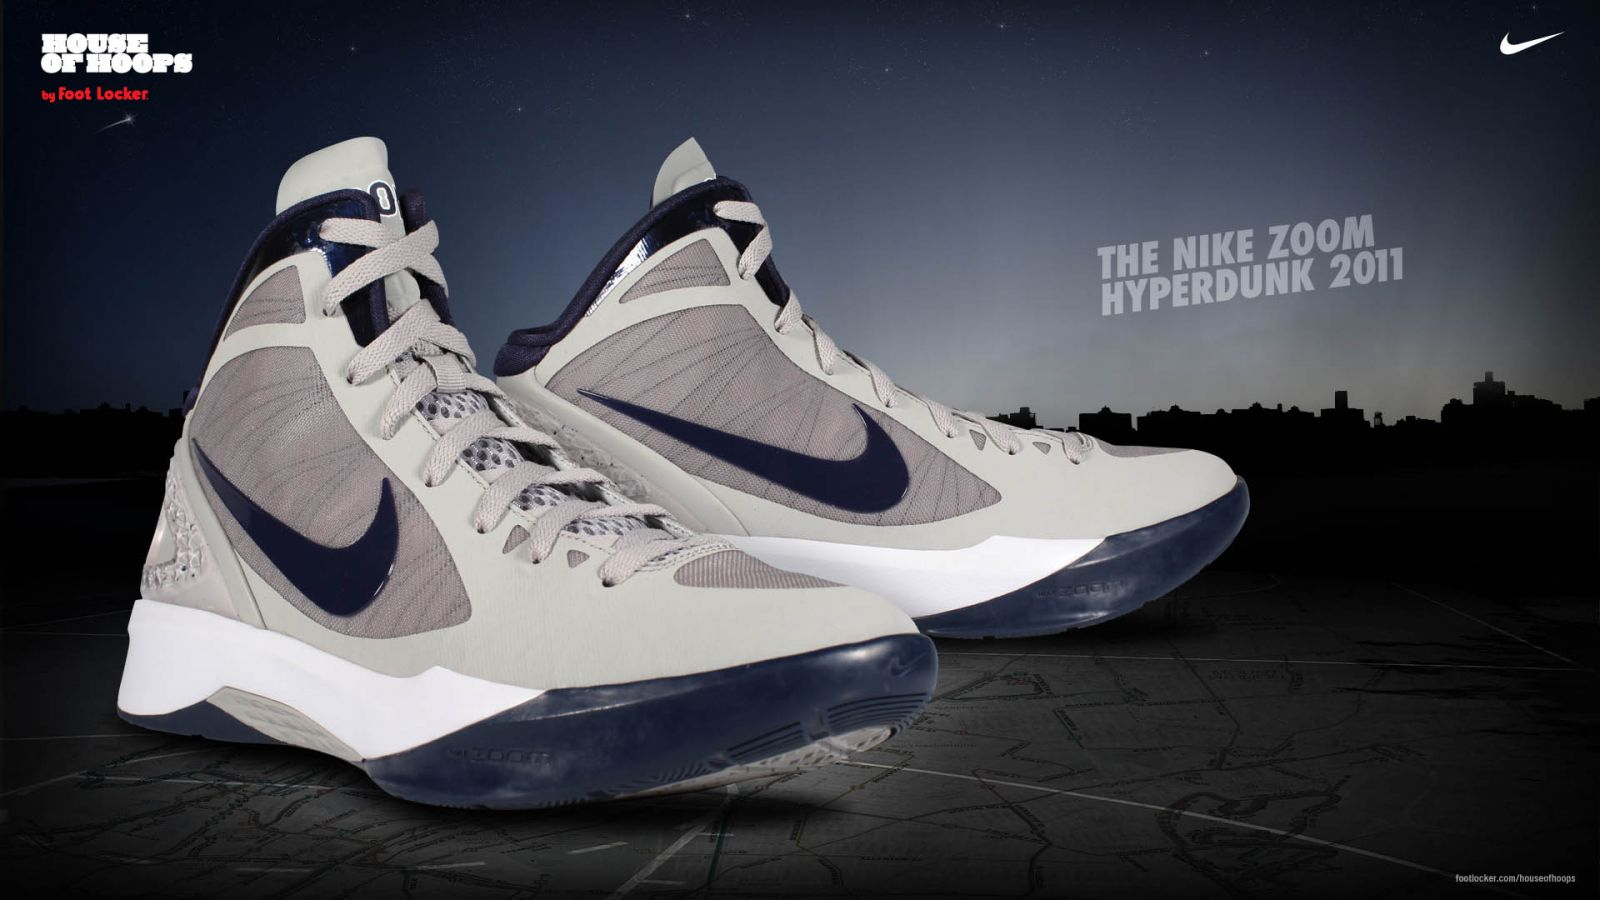 when are the hyperdunks 2011 coming out